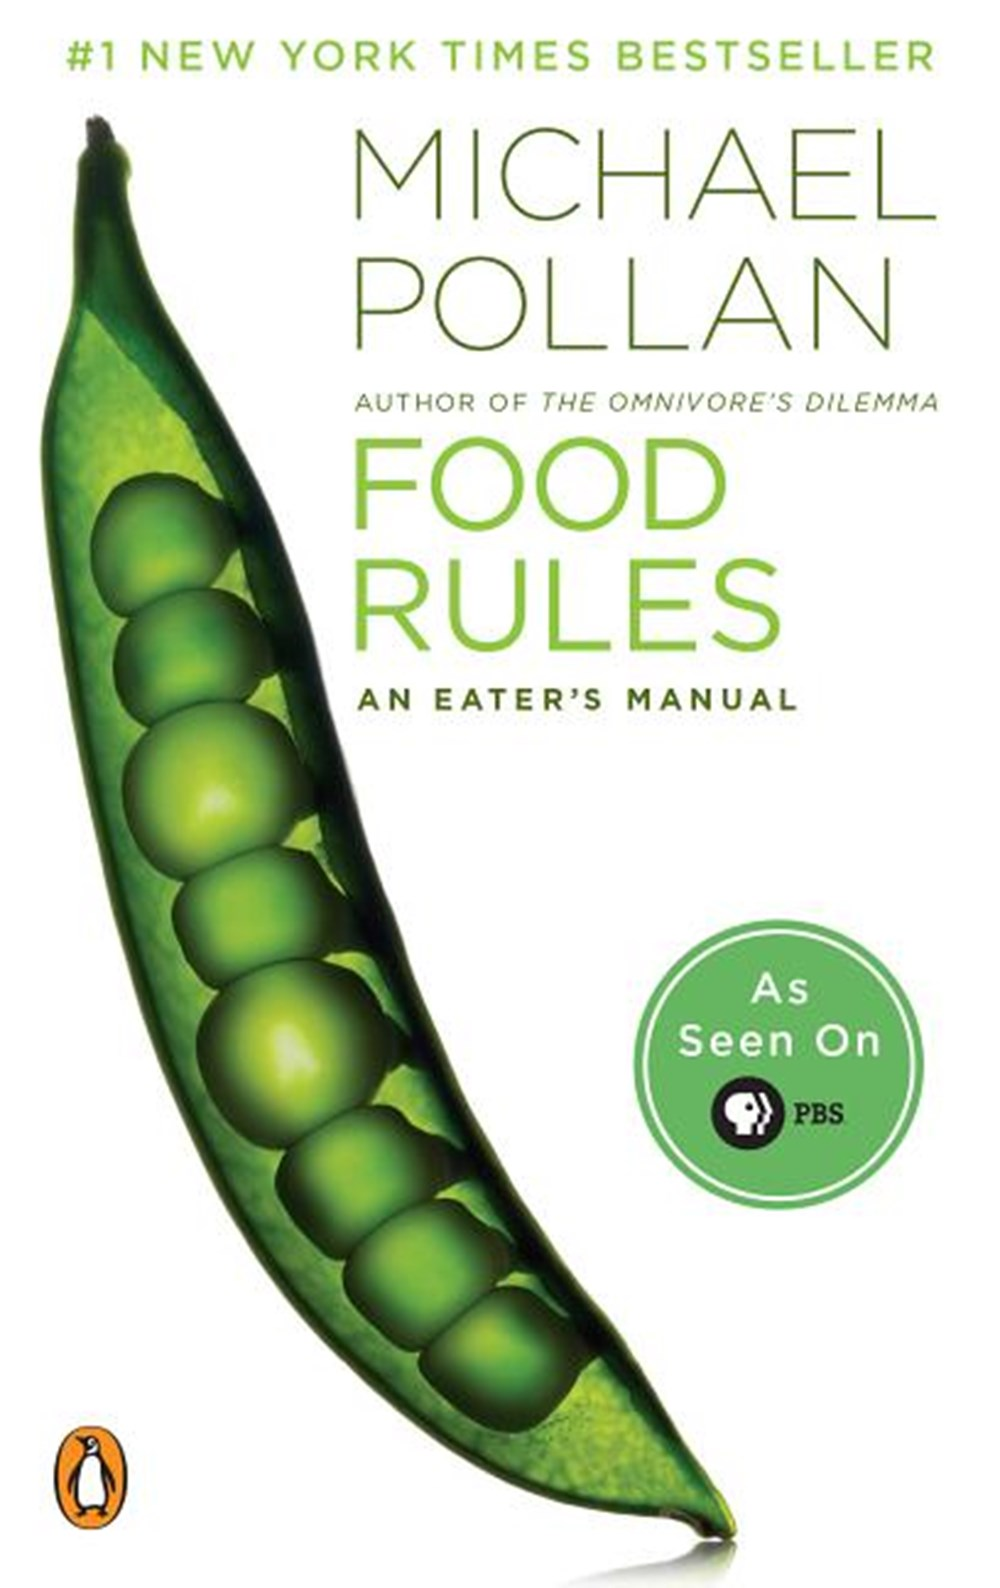 Food Rules An Eater's Manual